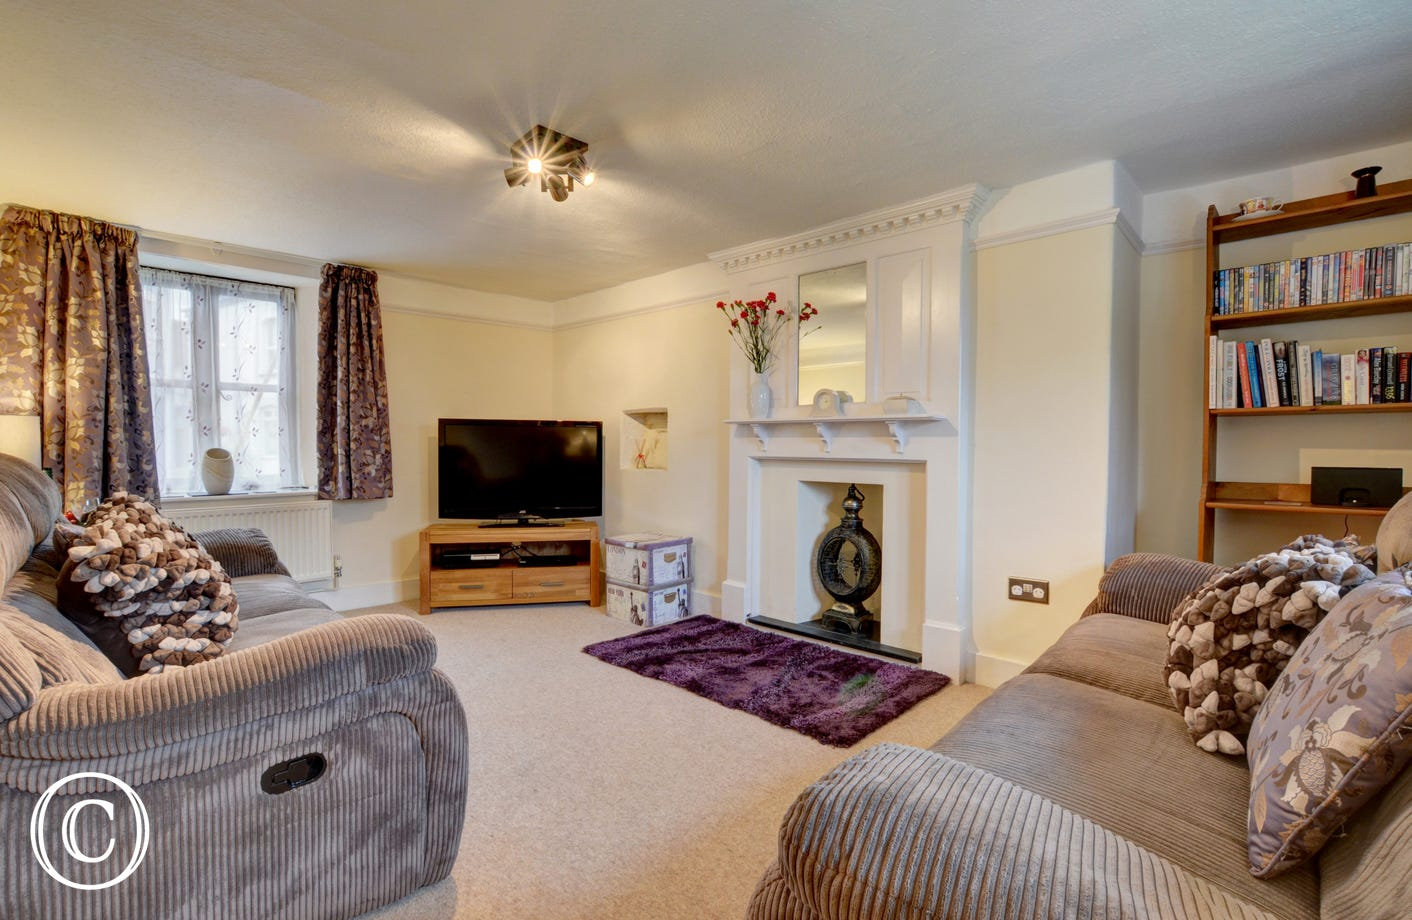 42 inch TV in the sitting with with comfy sofas and ornate fireplace